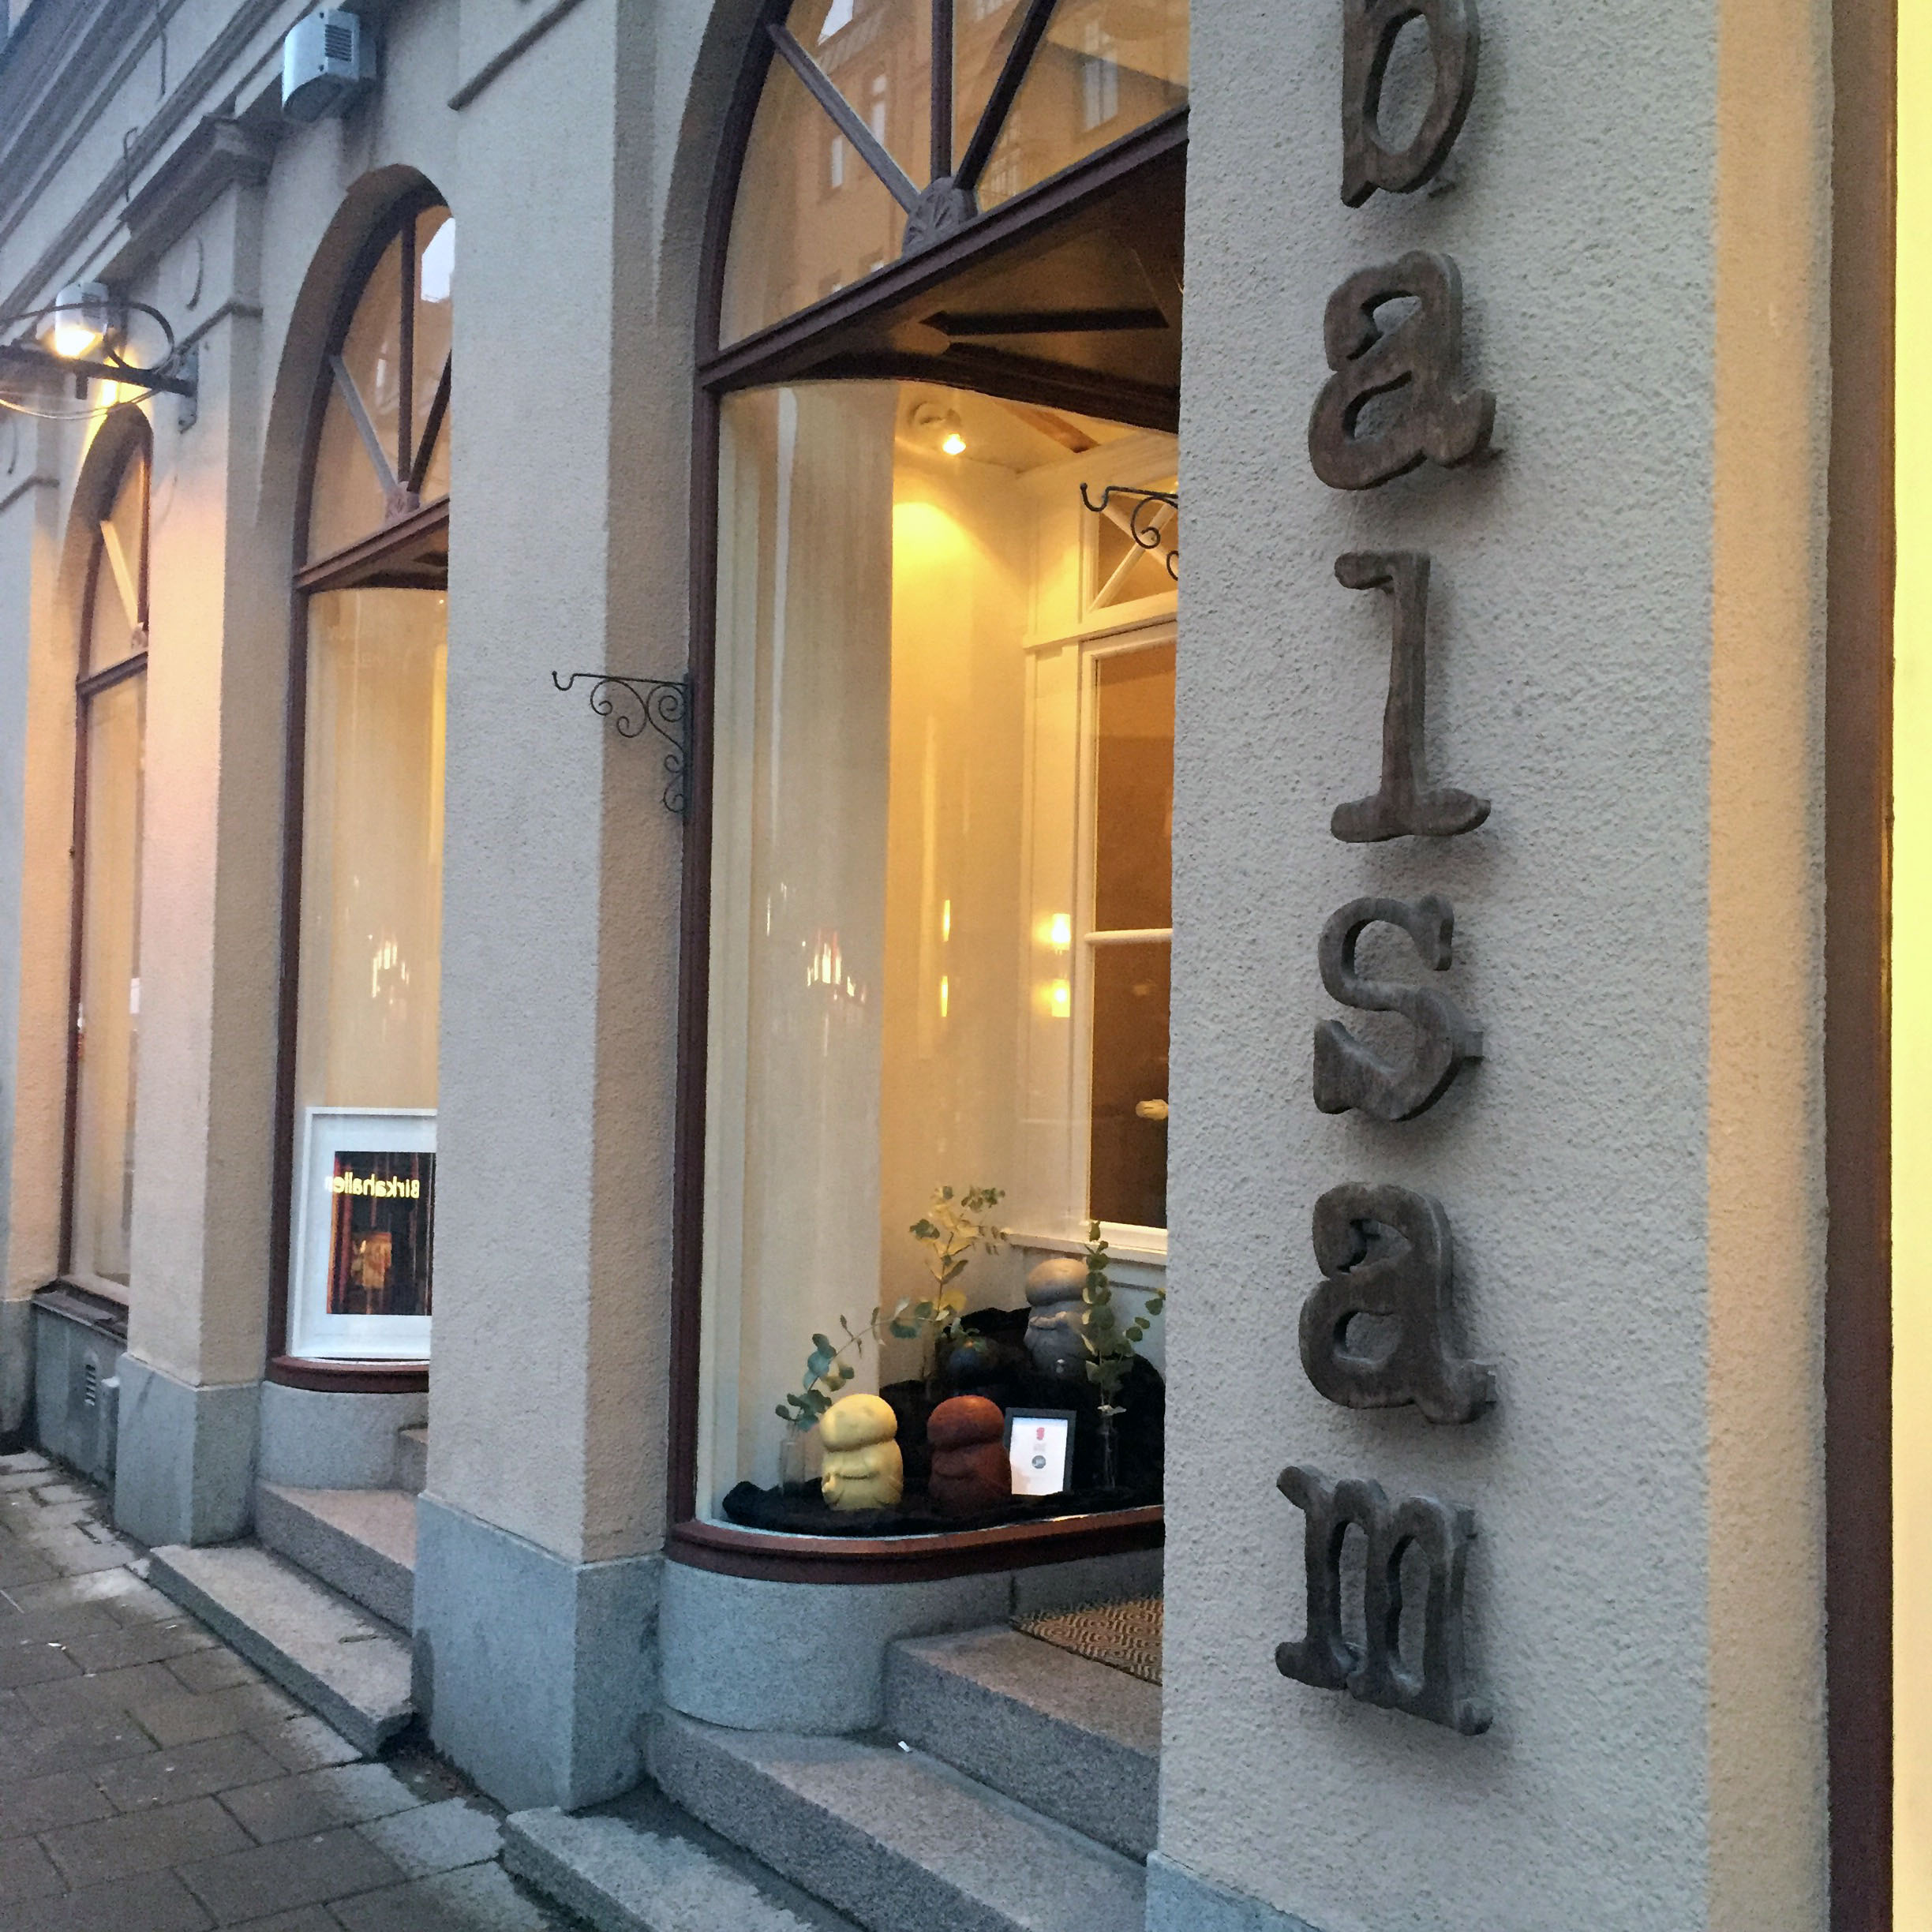 Find us at Balsam in Stockholm